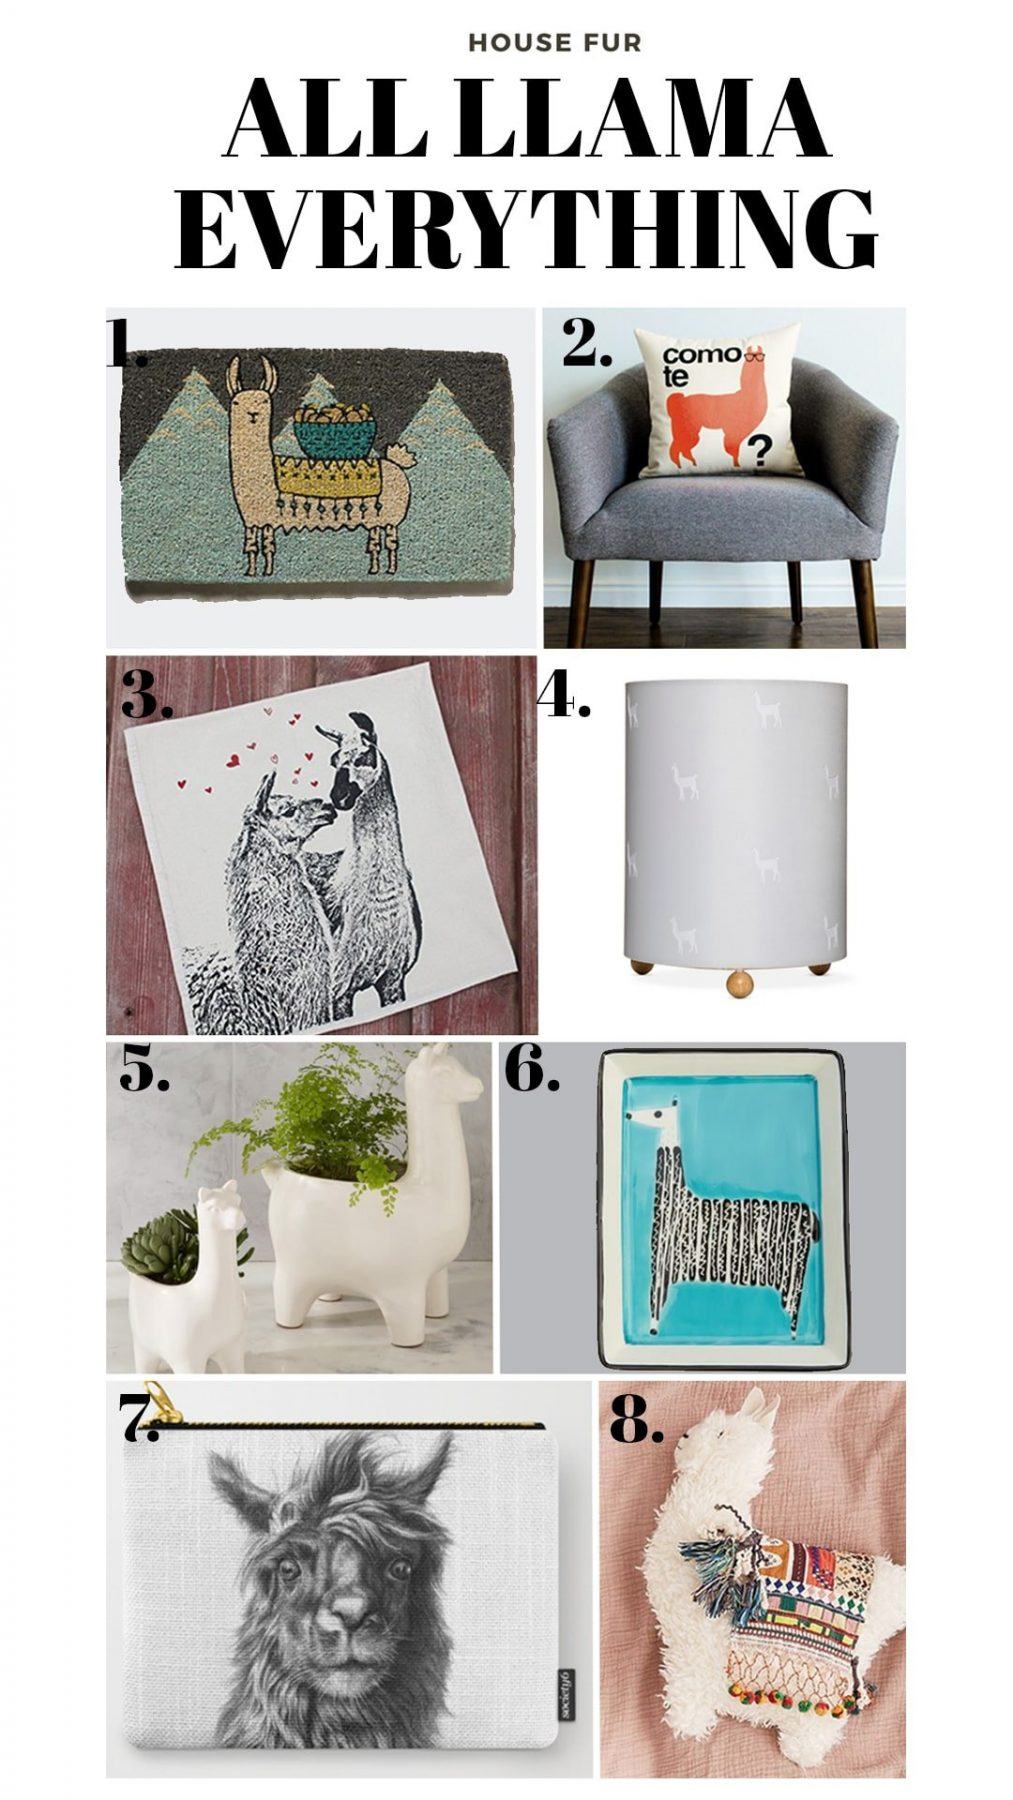 llama decorations and home goods